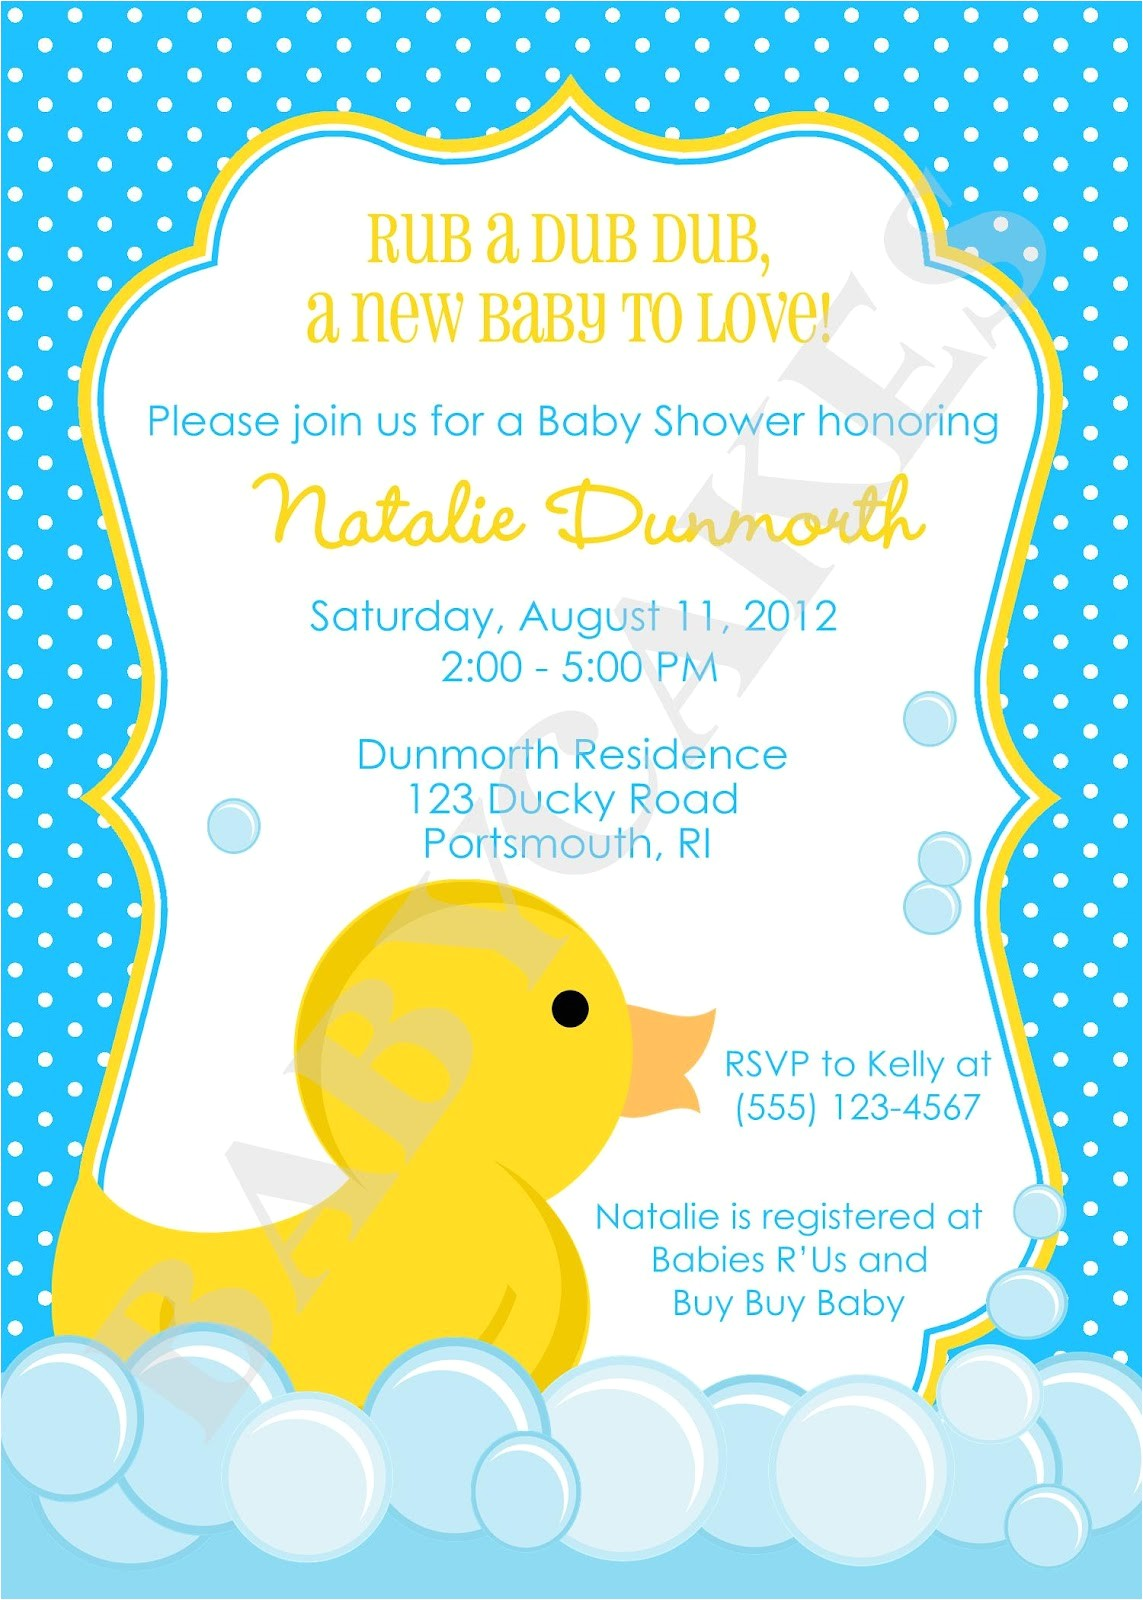 images recipes for rubber duckie shower